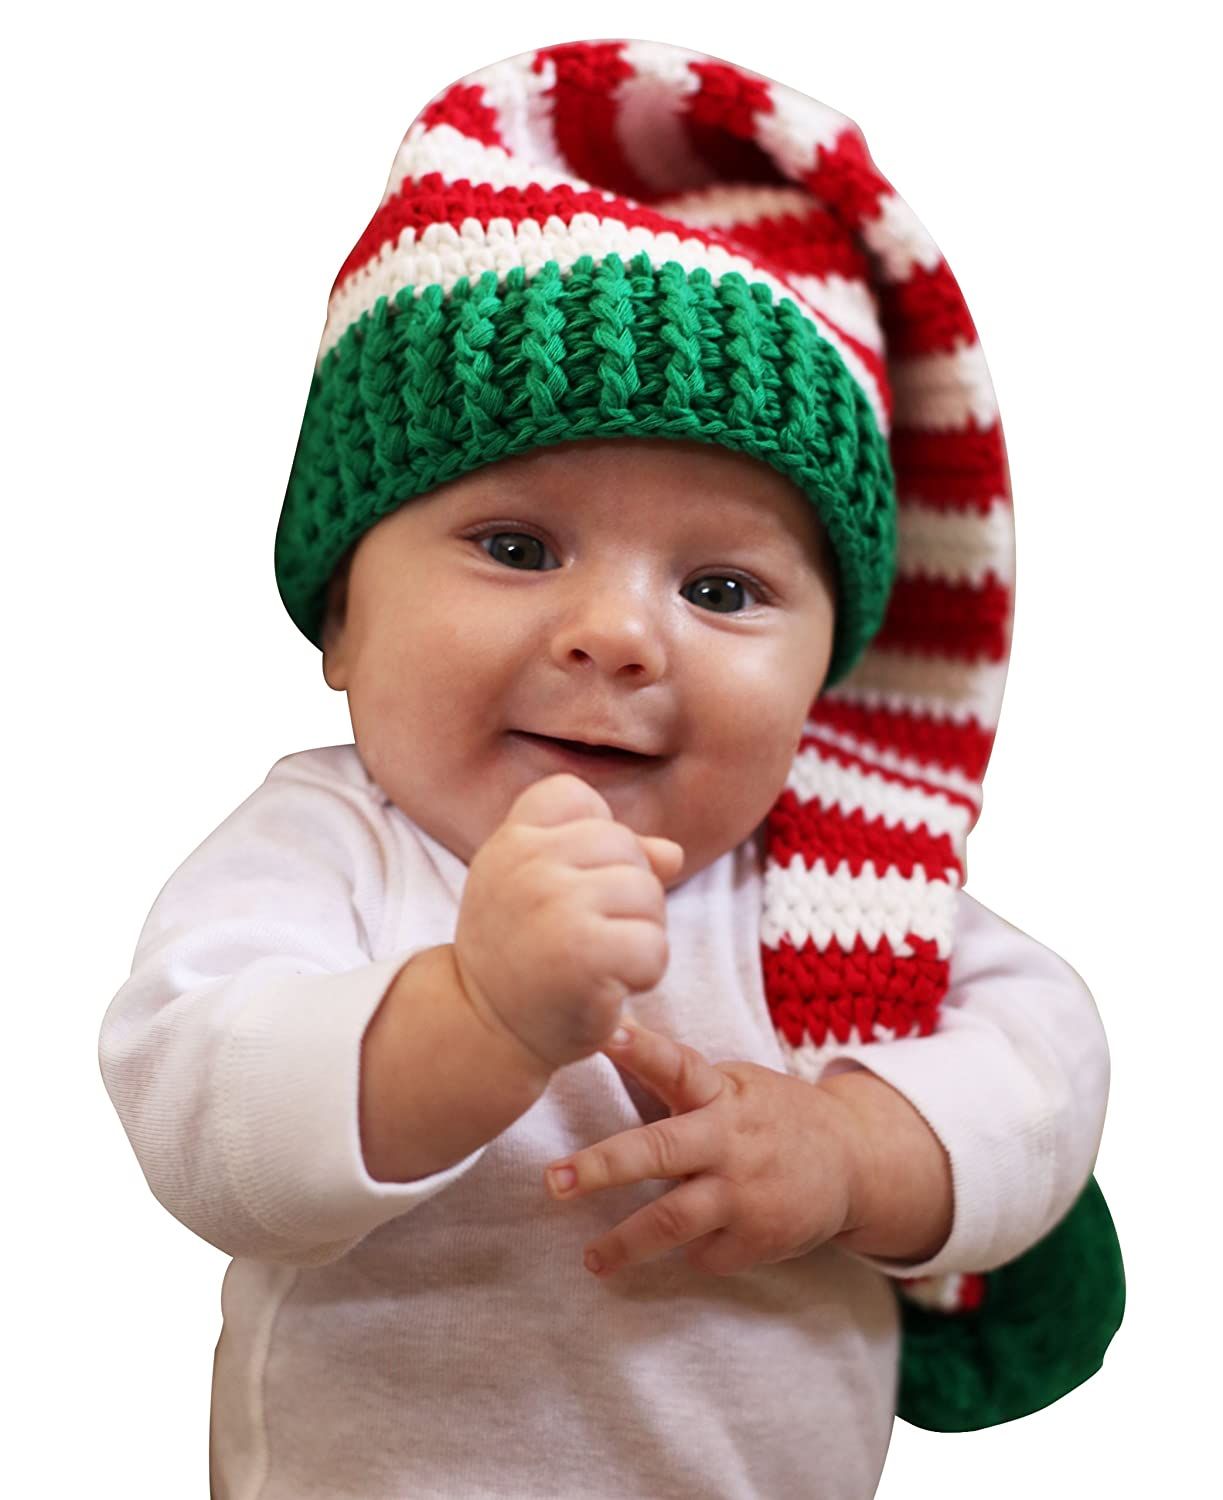 amazoncom melondipity christmas elf crochet baby hat red white green beanie stocking cap infant and toddler hats clothing